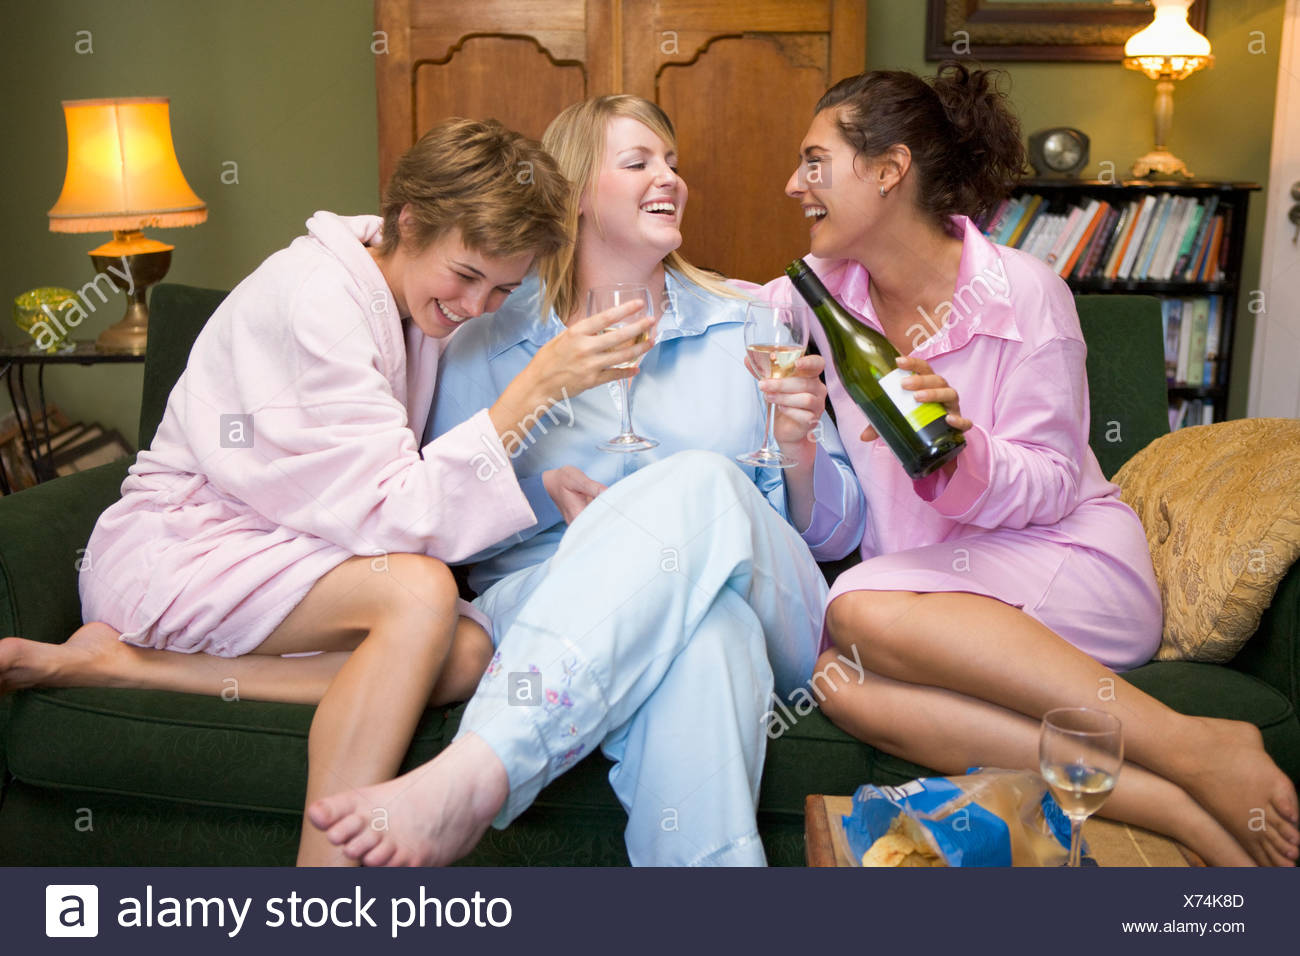 Three woman in night clothes sitting at home drinking wine - Stock Image